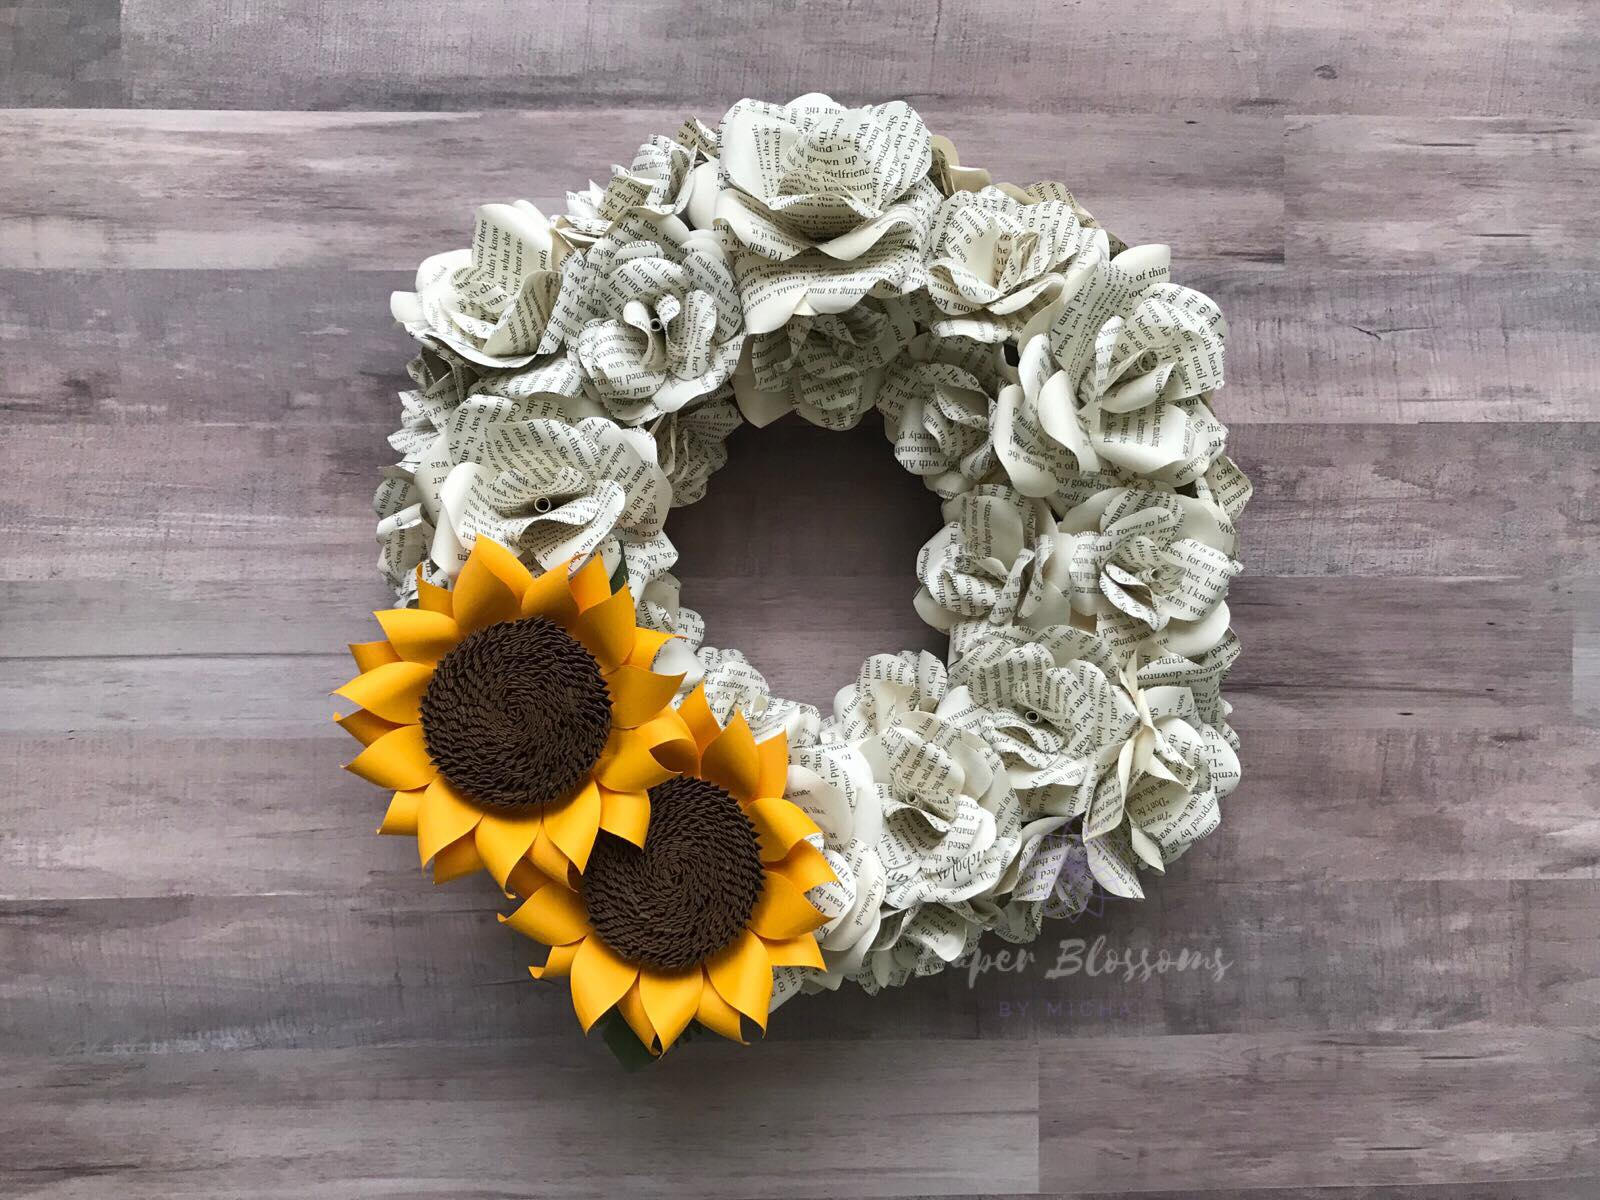 A Sunflower Wreath